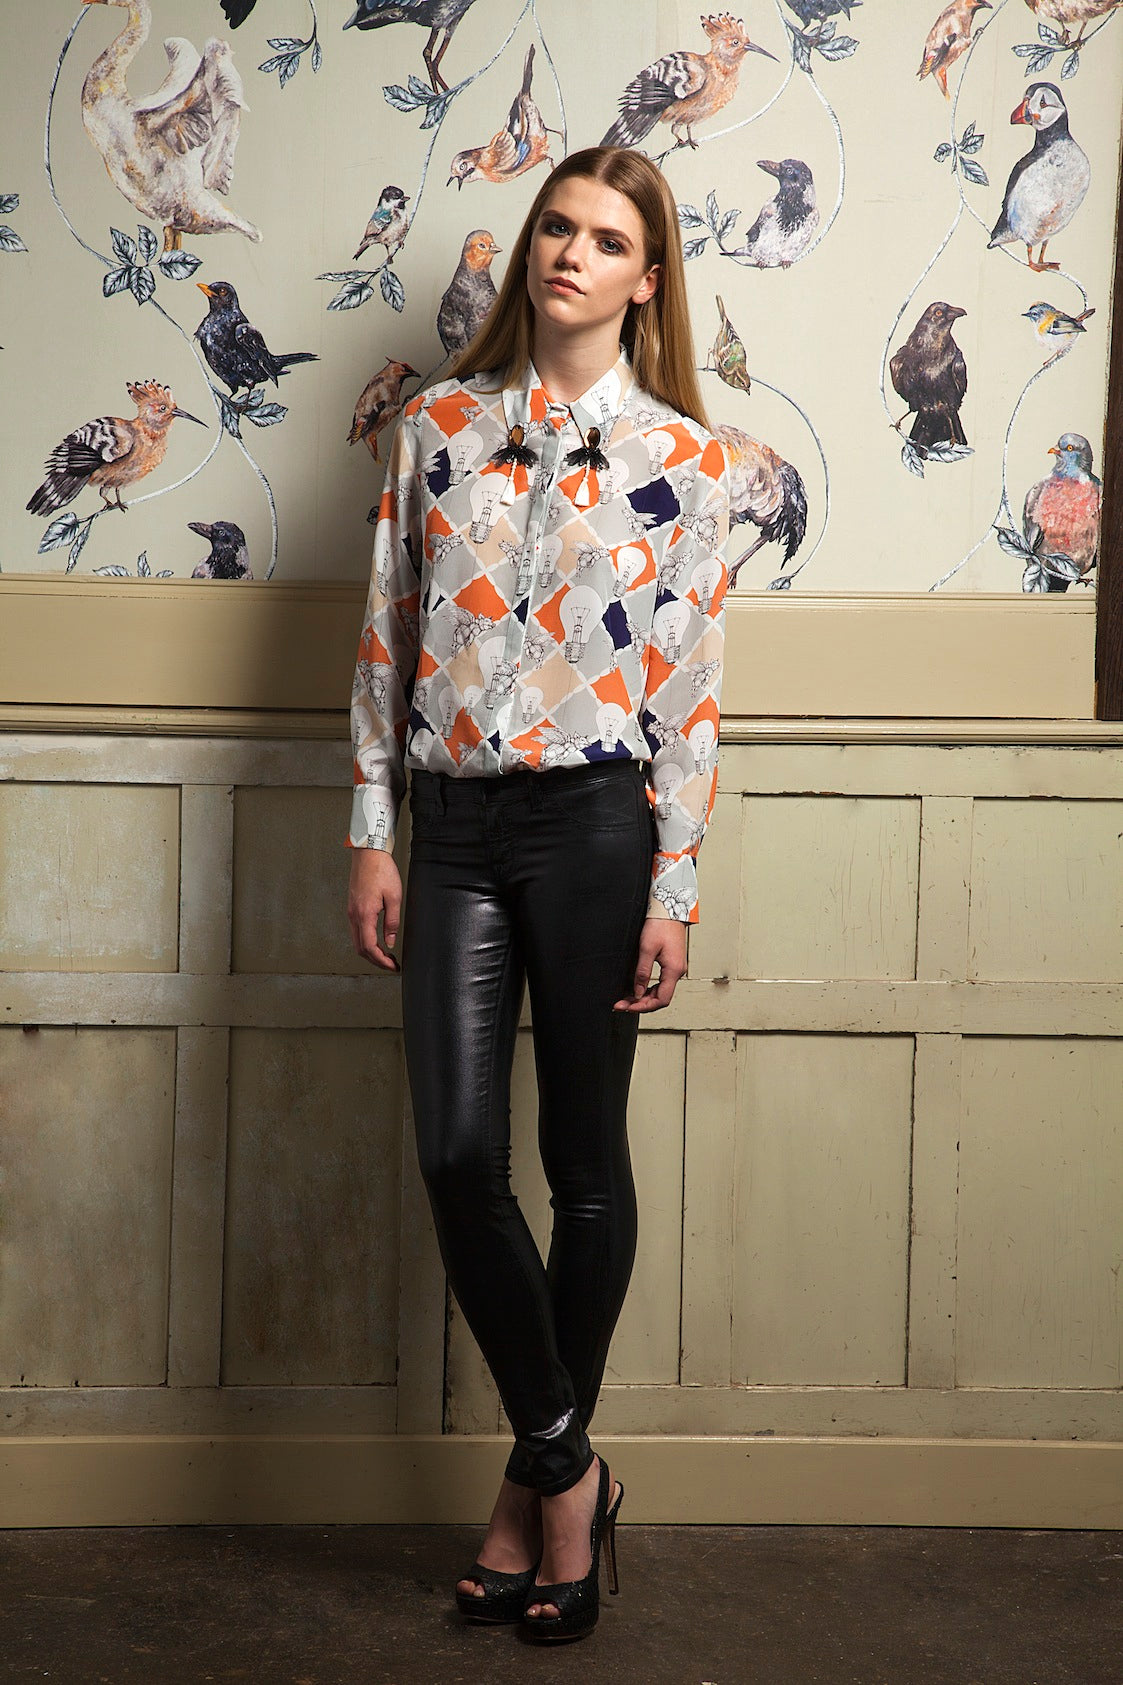 donna ida, london fashion, london style, printed blouse, printed shirt, print, skinny jeans, leather jeans, birds, model, lookbook